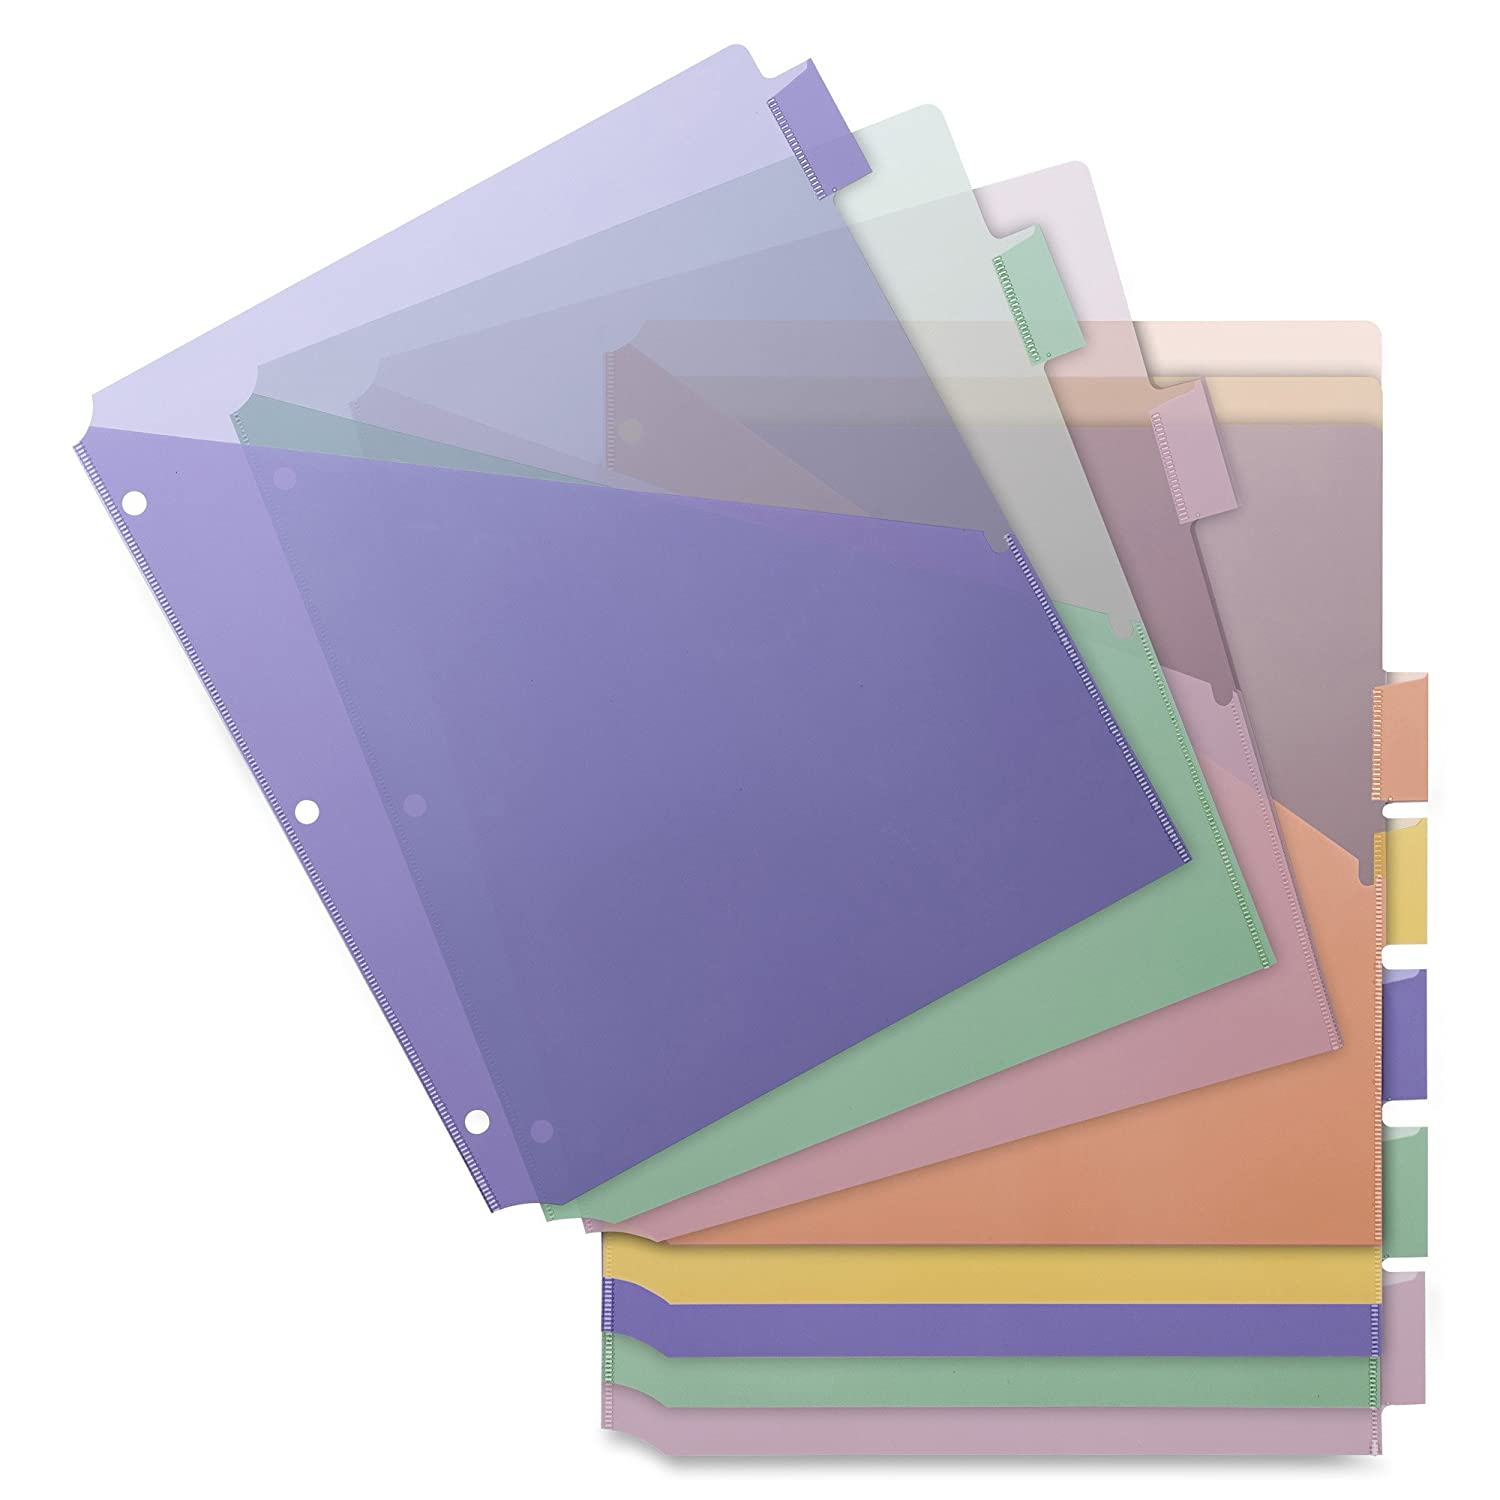 50160-6493 Frosted Strawberry Lime Tangerine Grape Blueberry Pack of 6 Letter Size Lemon Filexec 3 Ring Binder 1.5 Inch Capacity